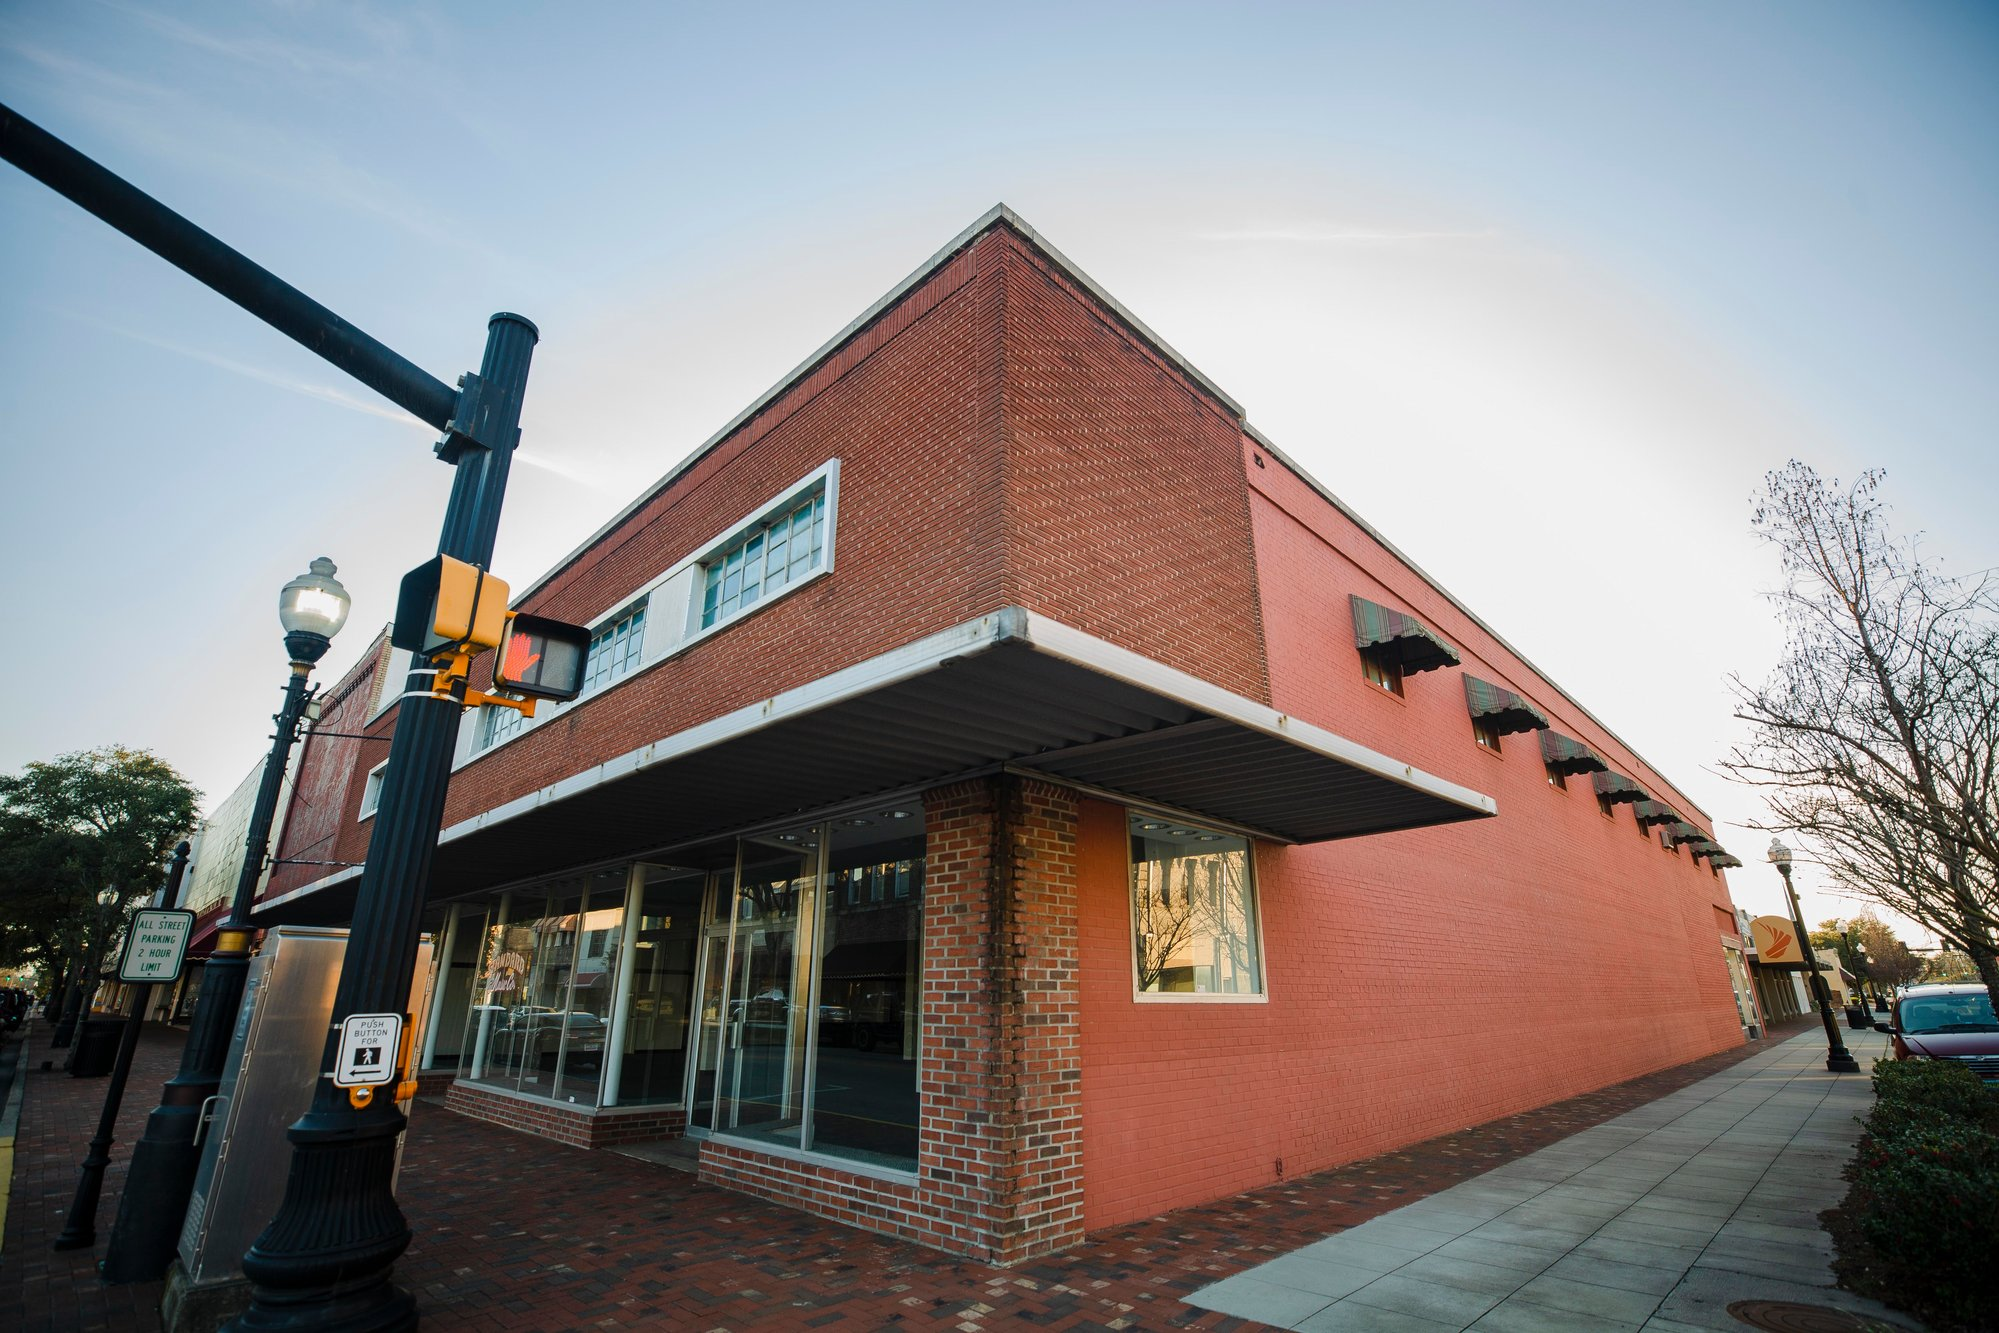 Sumter's first brewery and tasting room, Sumter Original Brewery, is coming later in 2019 at 2 S. Main St., the former home of Standard Music, which recently moved to 561 Bultman Drive.